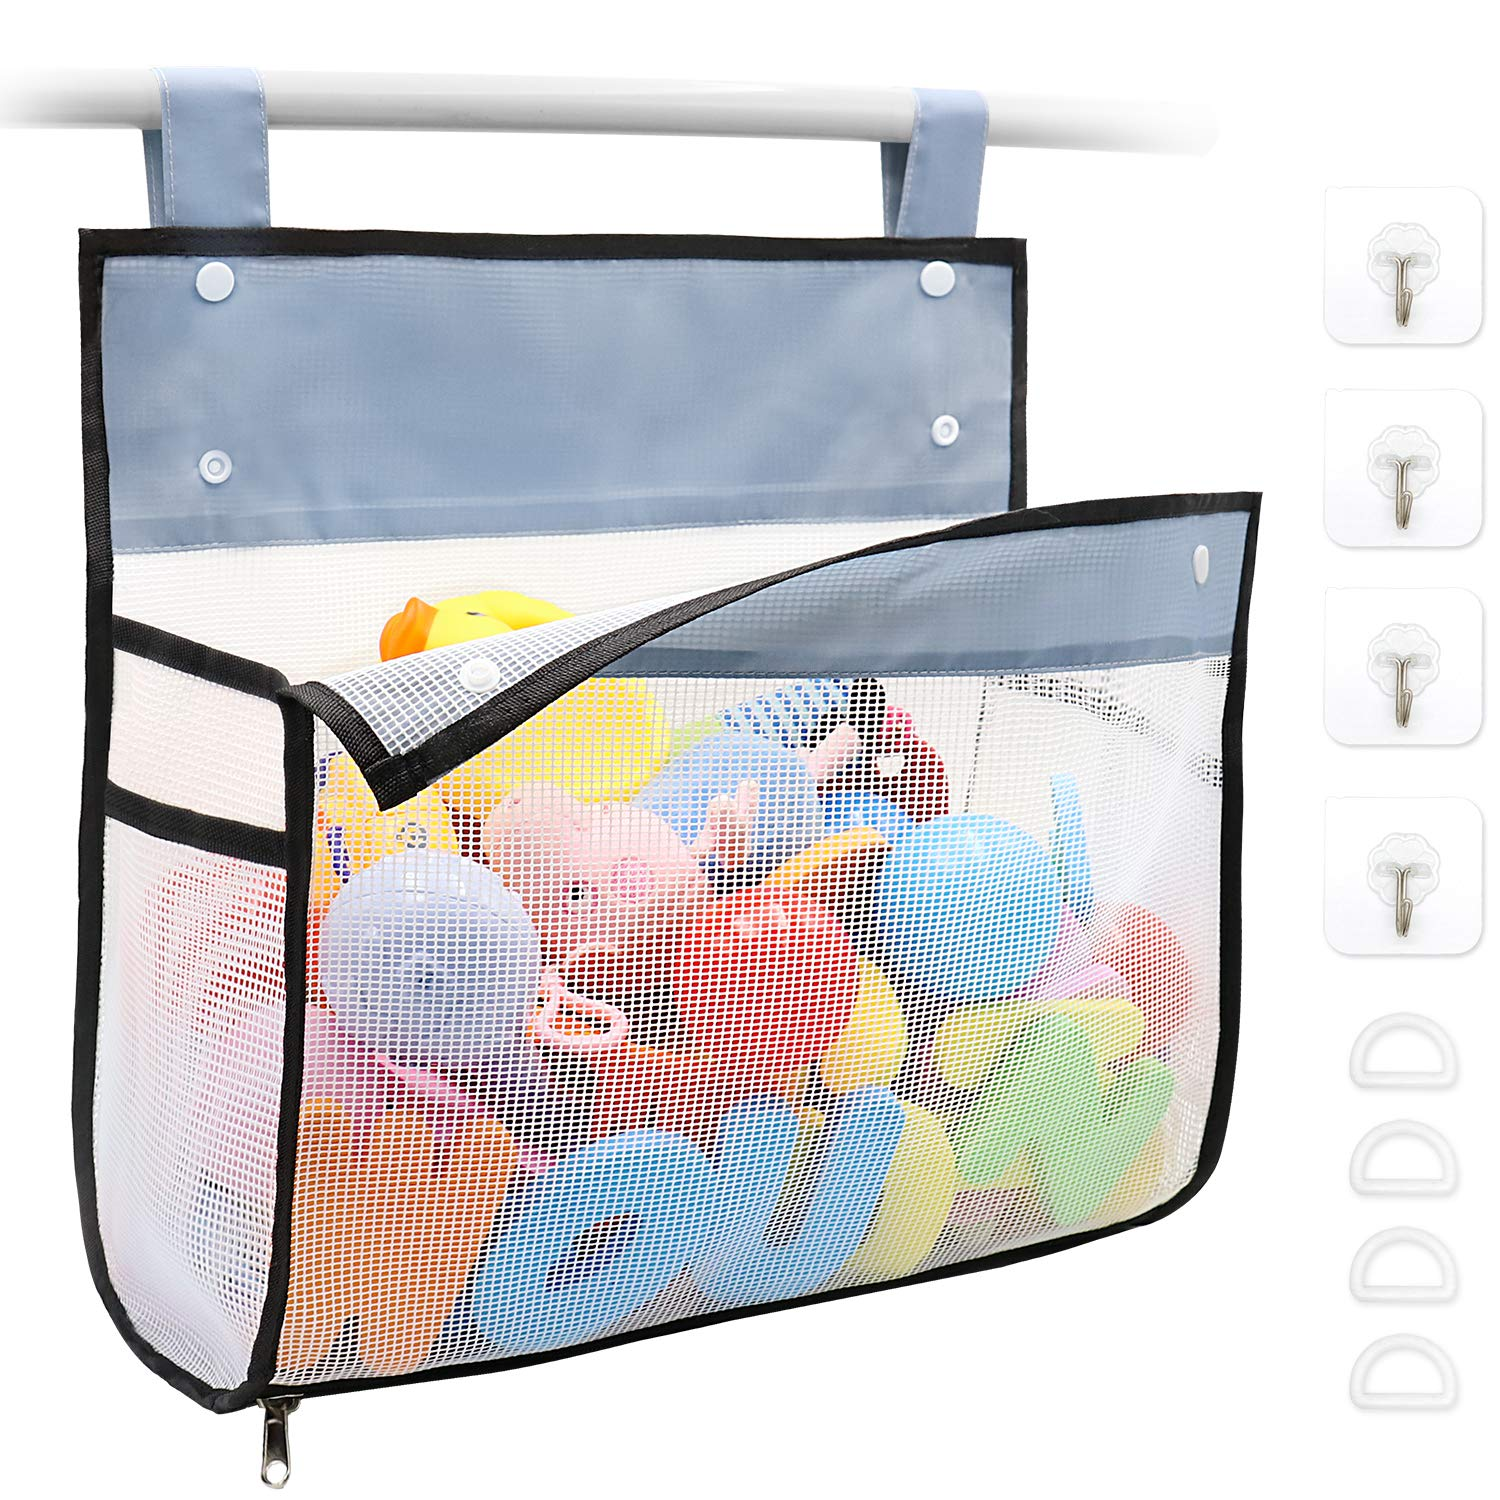 Bath Toy Financial sales sale Lowest price challenge Organizer Multiple Ways to Extra Ba Large Opening Hang